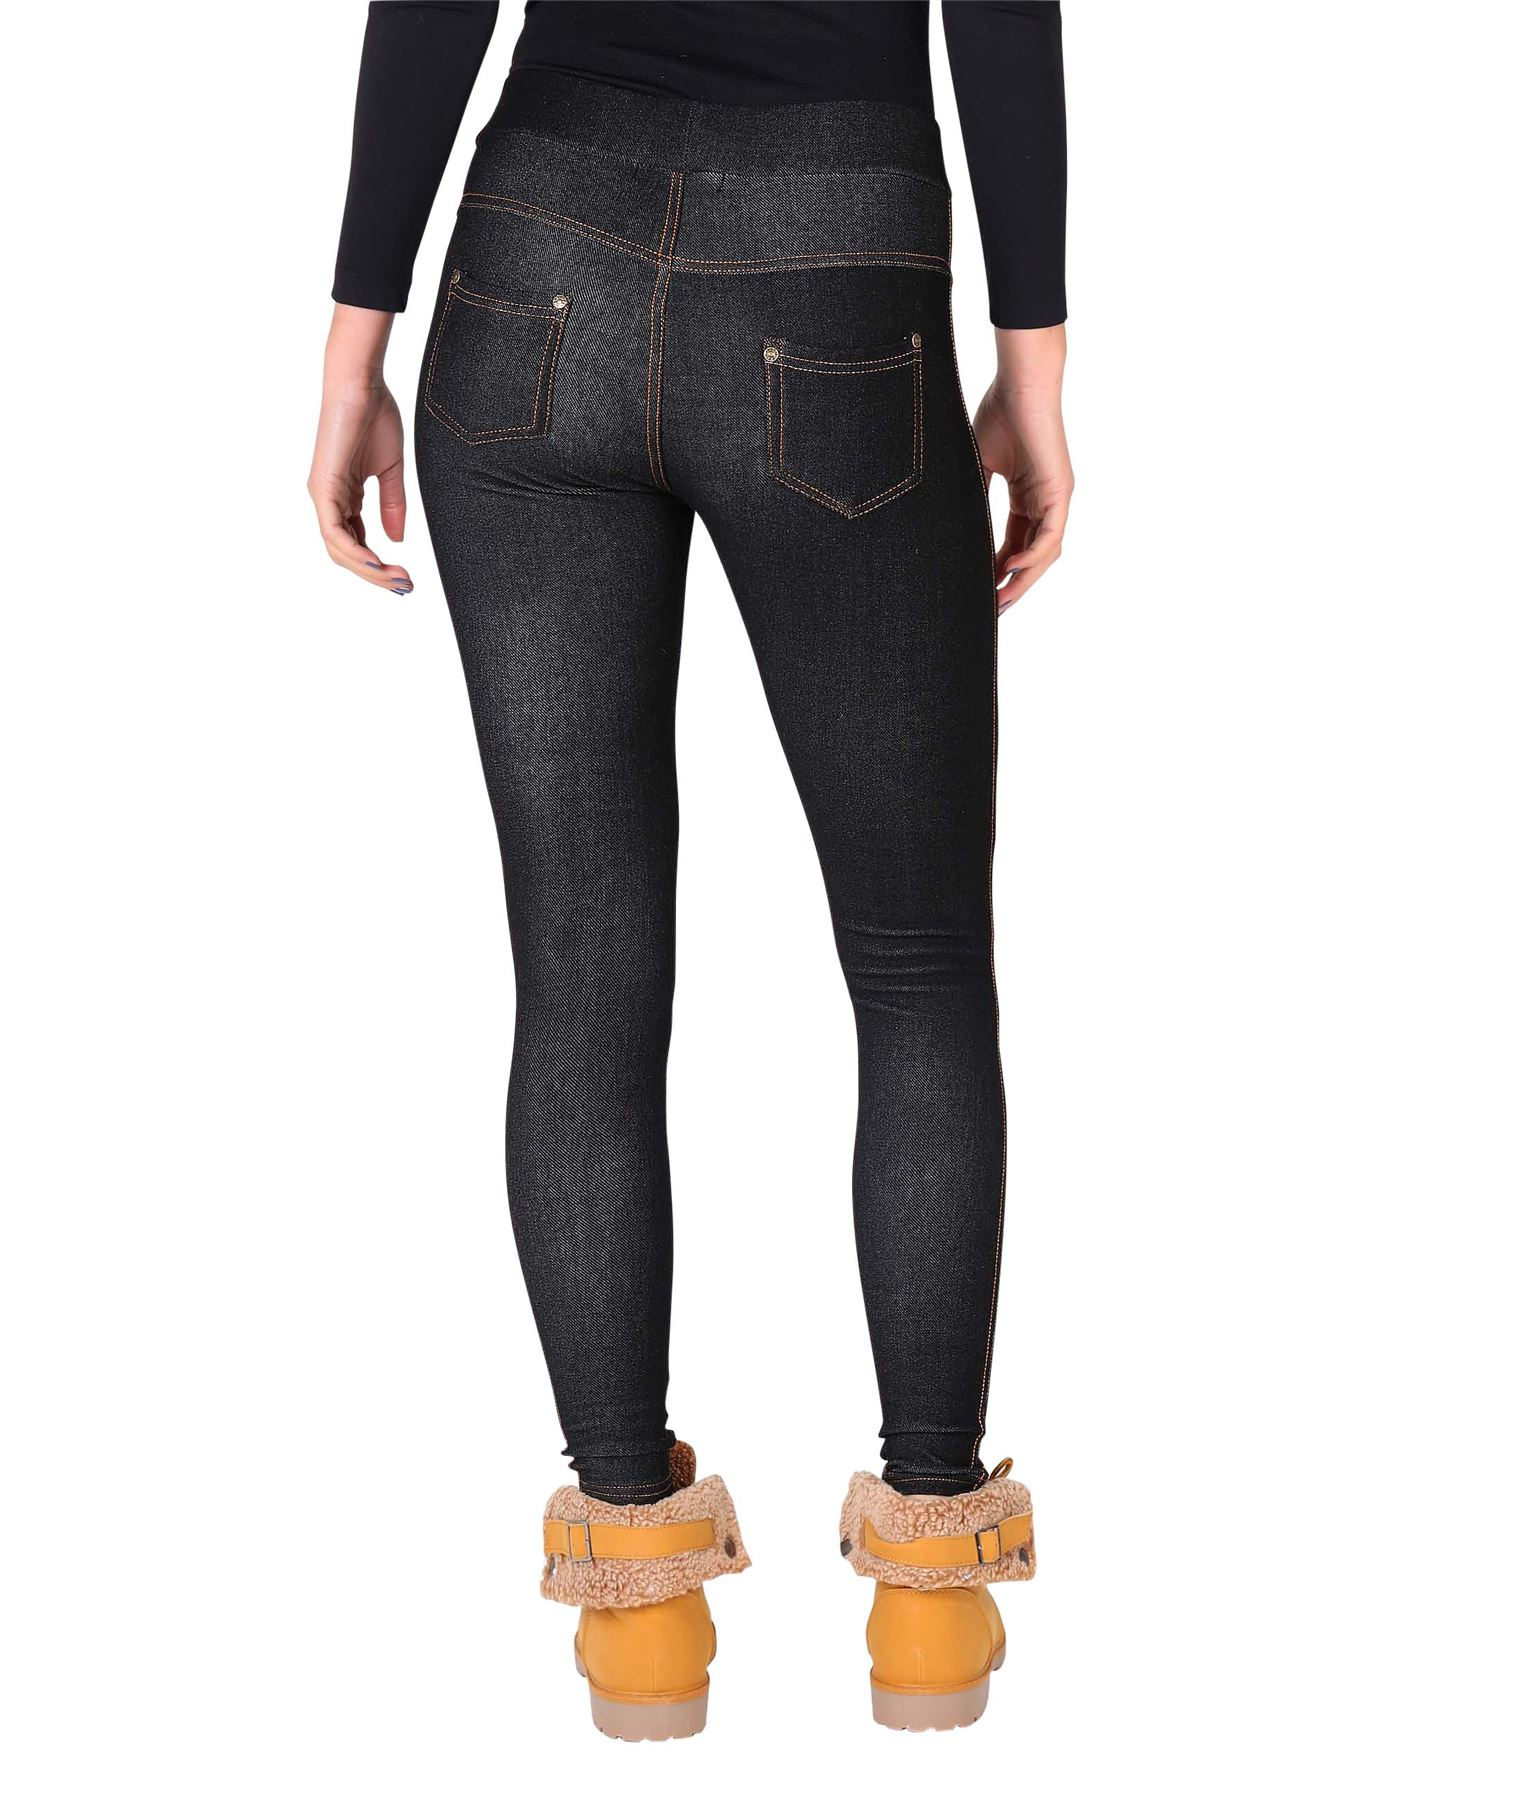 Womens-Warm-Fleece-Lined-Stretch-Denim-Jeans-Thermal-Winter-Leggings-Jeggings thumbnail 10